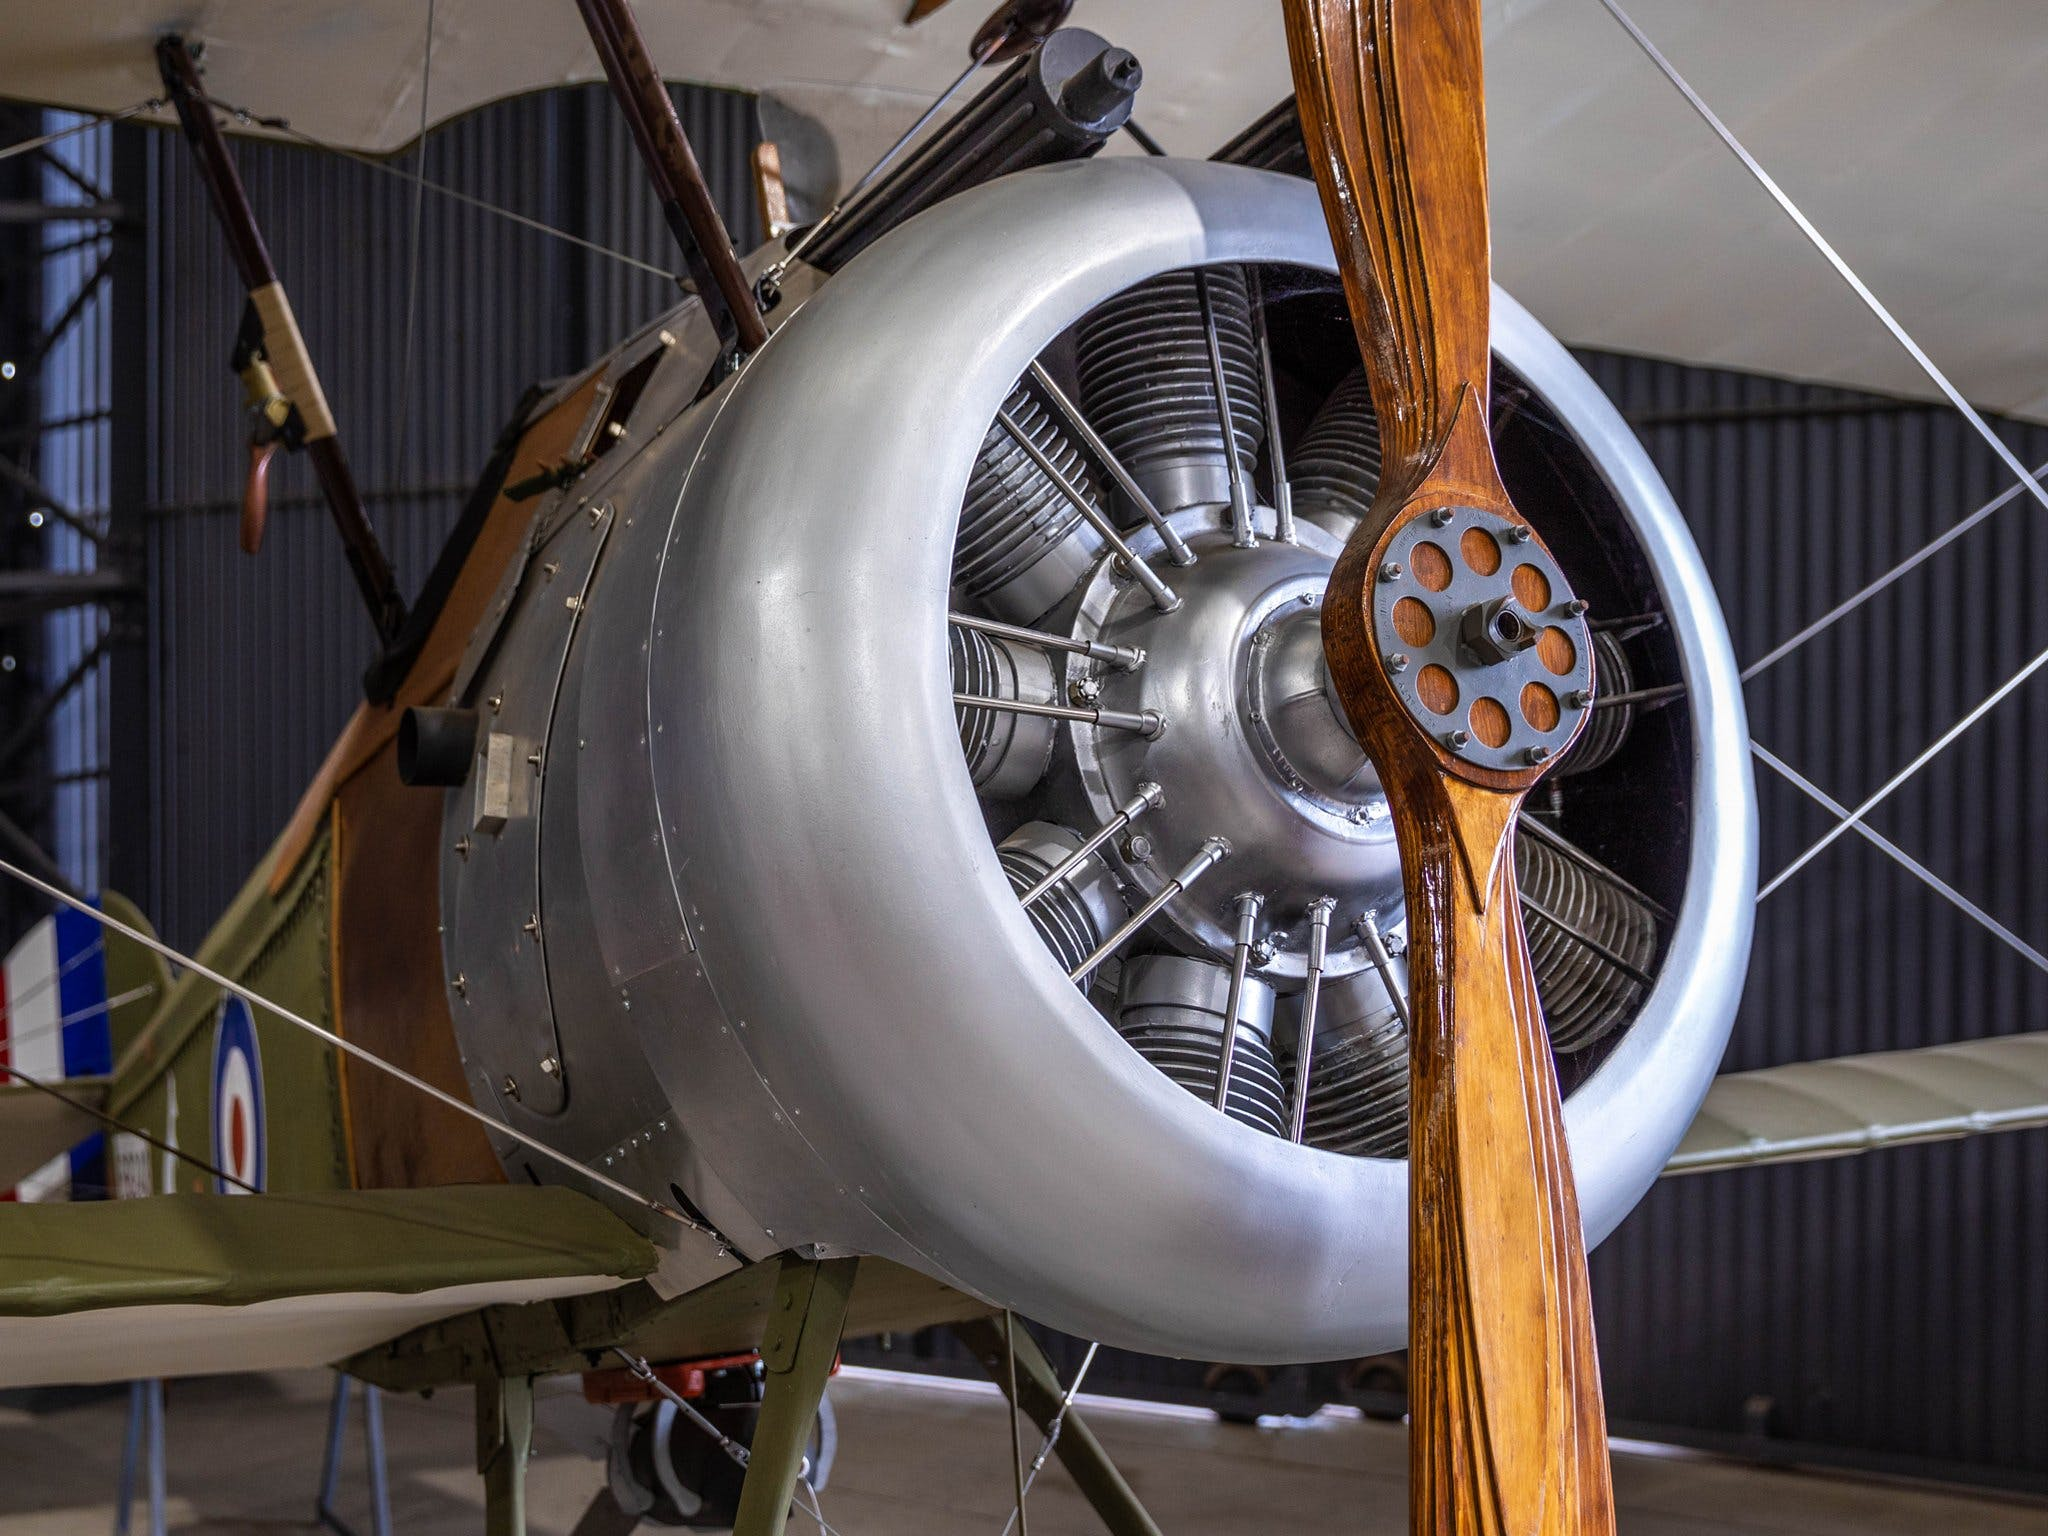 RAAF Amberley Aviation Heritage Centre - Accommodation Find